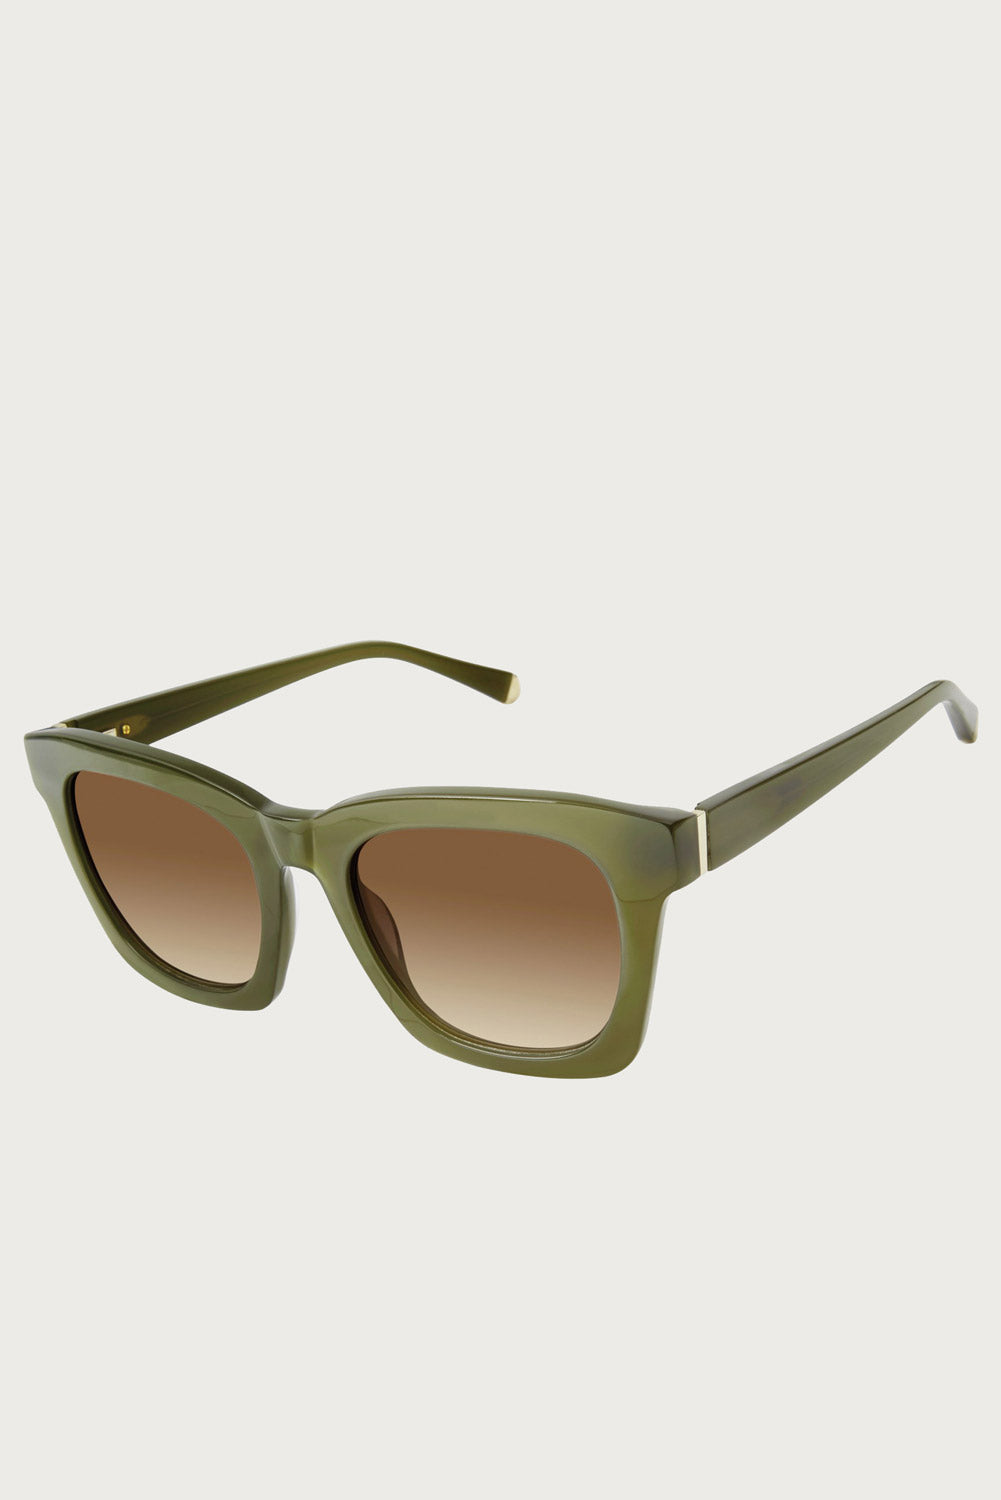 Kate Young For Tura Marley Sunglasses in Khaki - Vert & Vogue